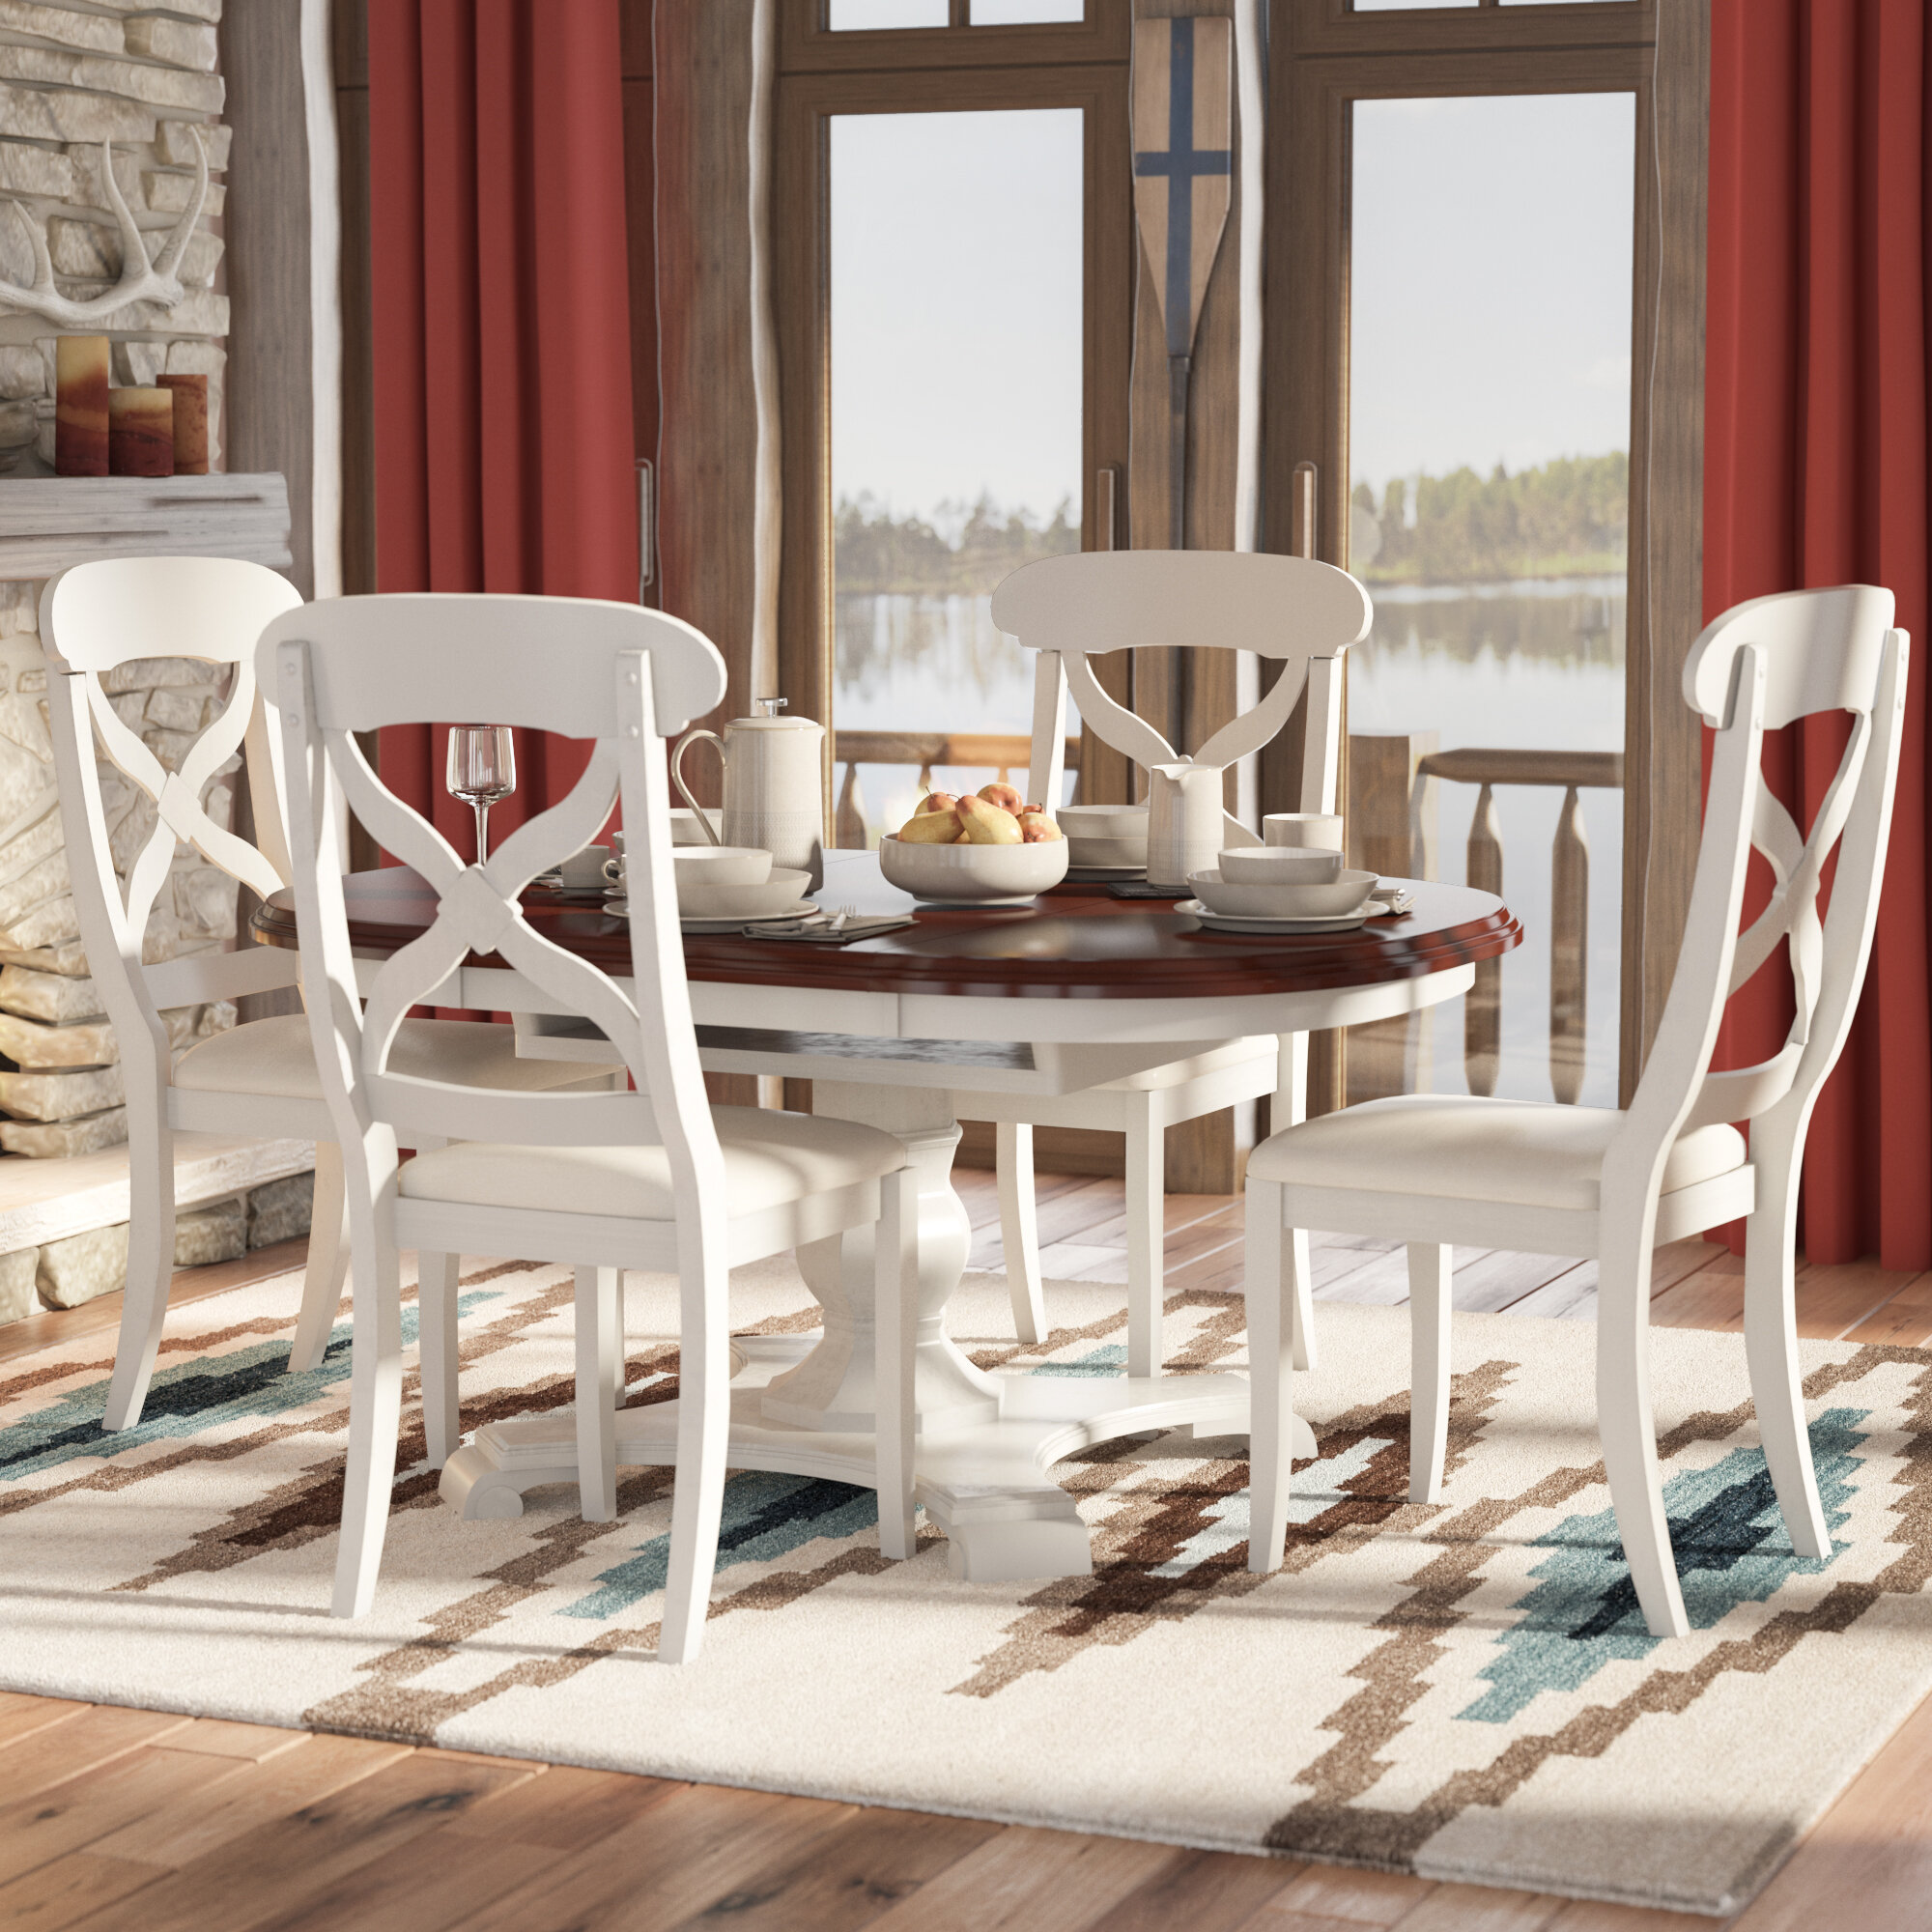 Superieur Aponte Butterfly Leaf 5 Piece Dining Set